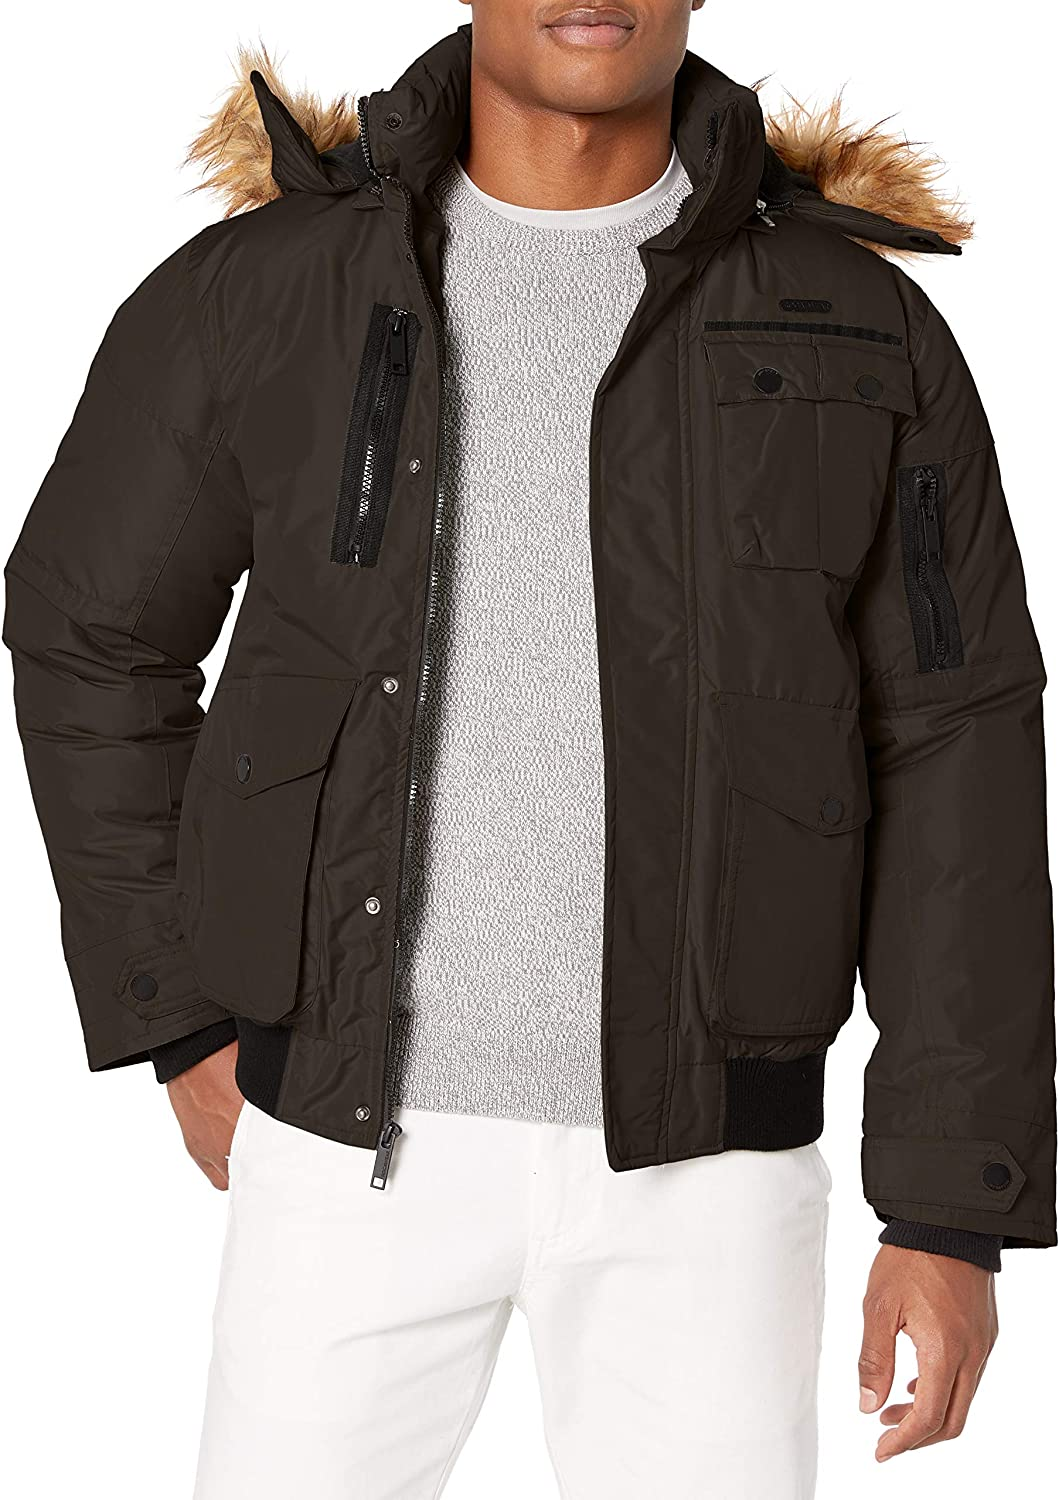 Rocawear mens Outerwear Jacket: Clothing